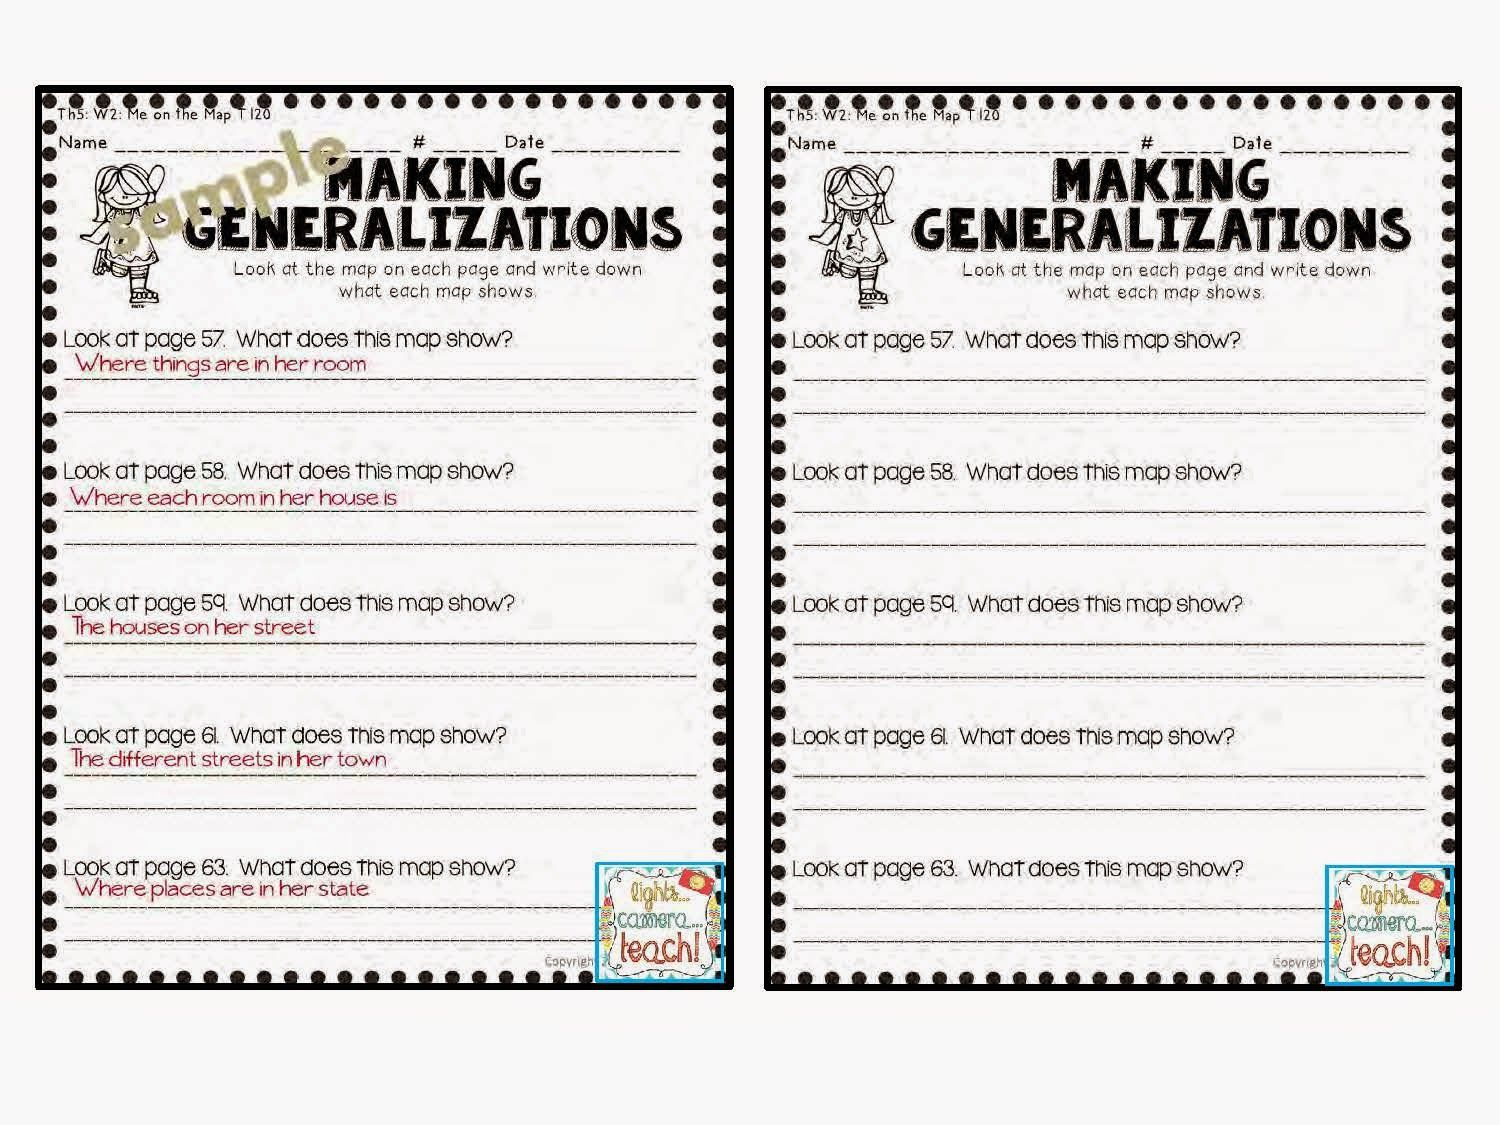 Worksheets Making Generalizations Worksheets making generalizations comprehension skill this resource comes with teacher cheat sheets yay